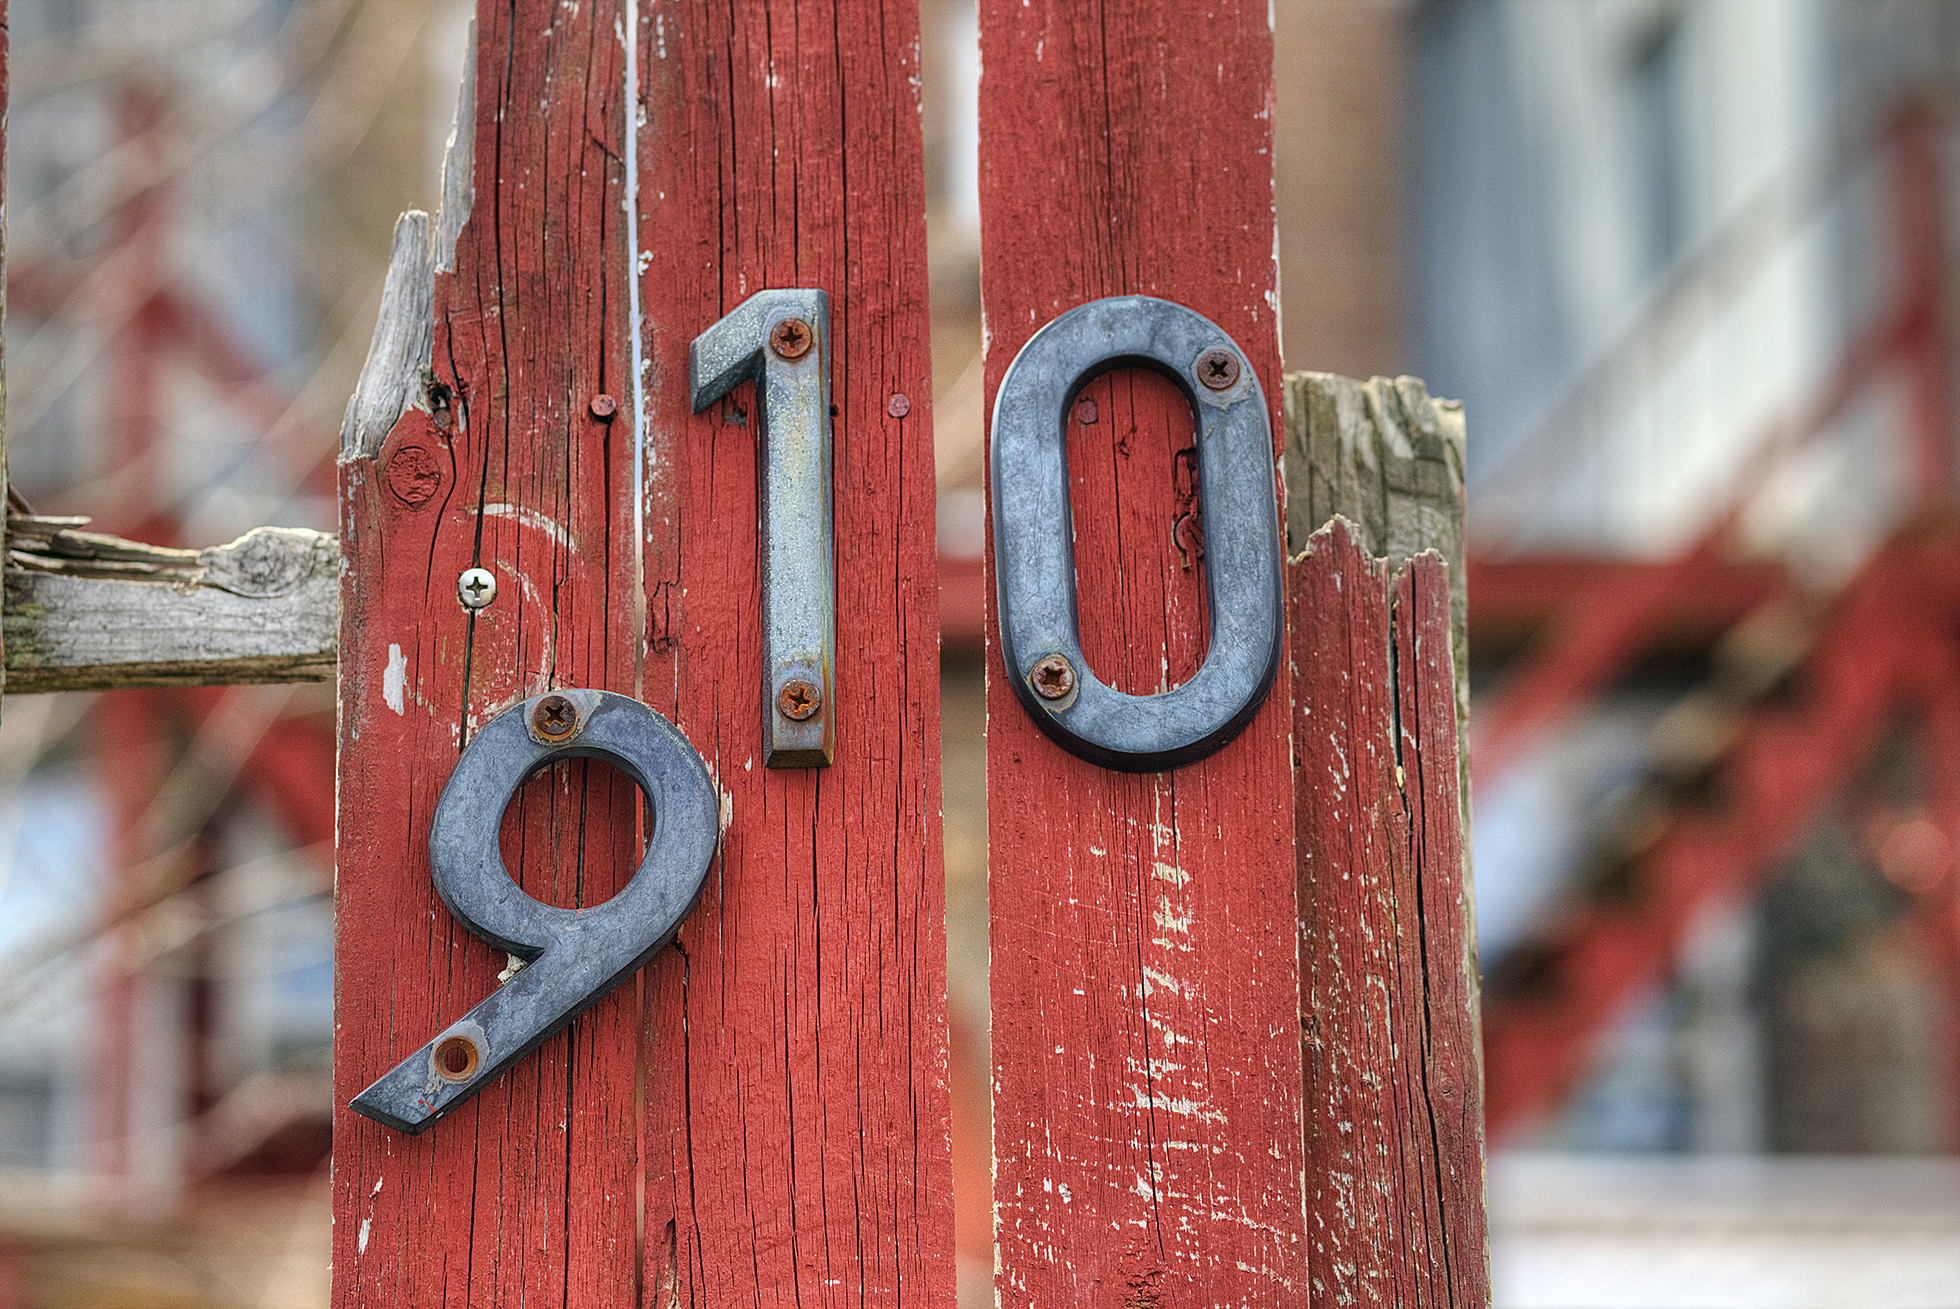 Beat up red fence with steel house numbers falling off